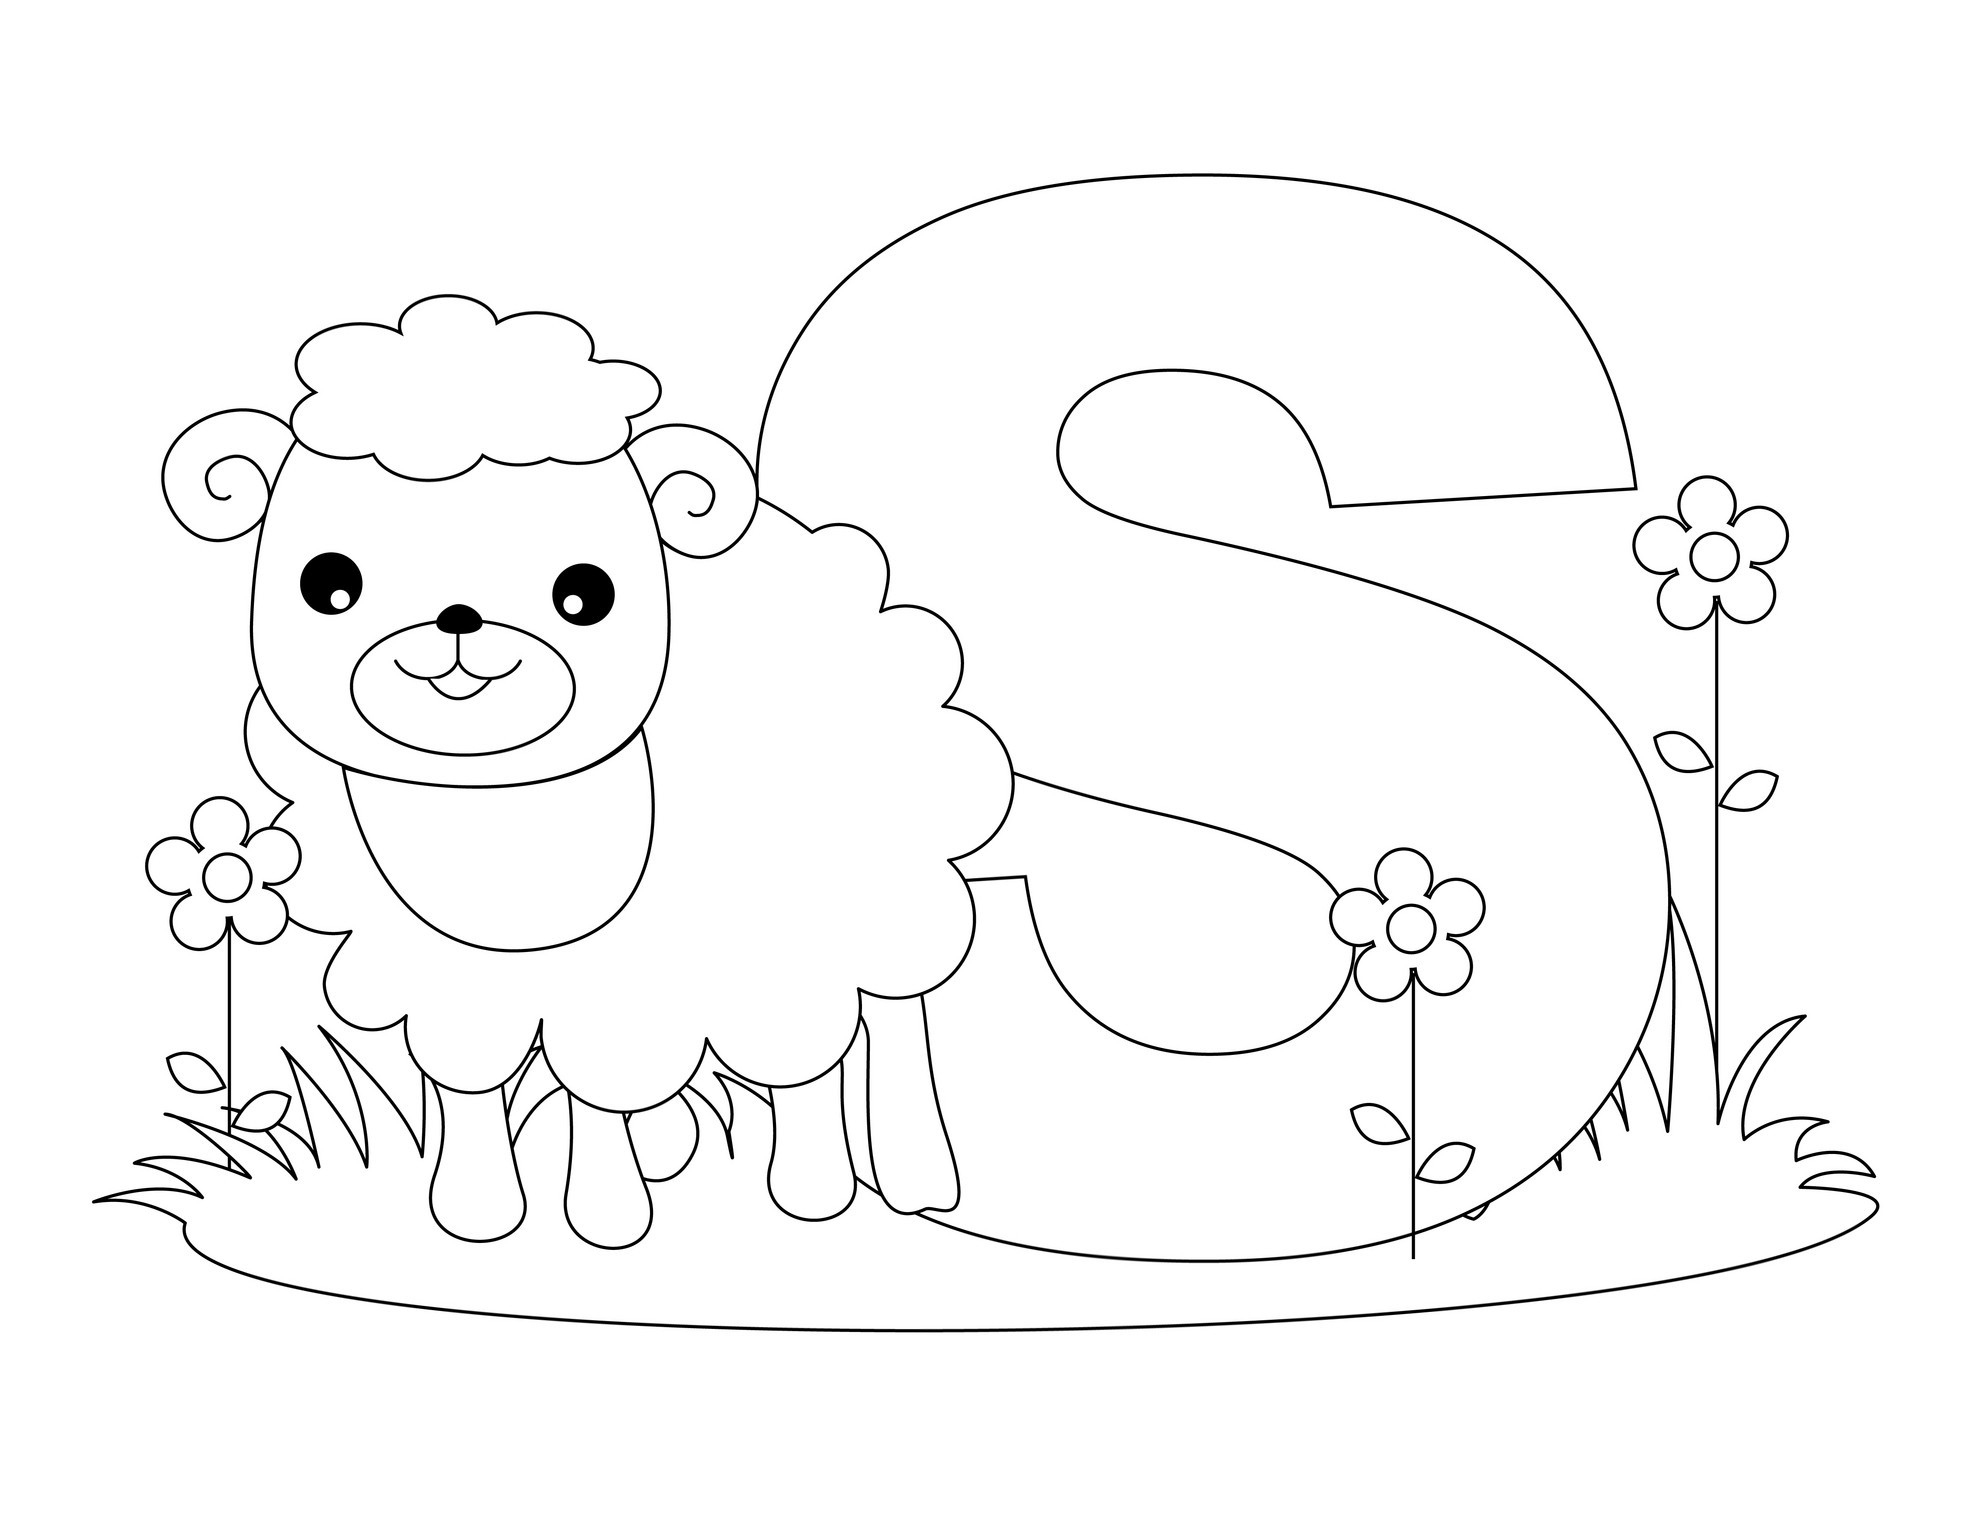 alphabet coloring pages for preschool - photo#23